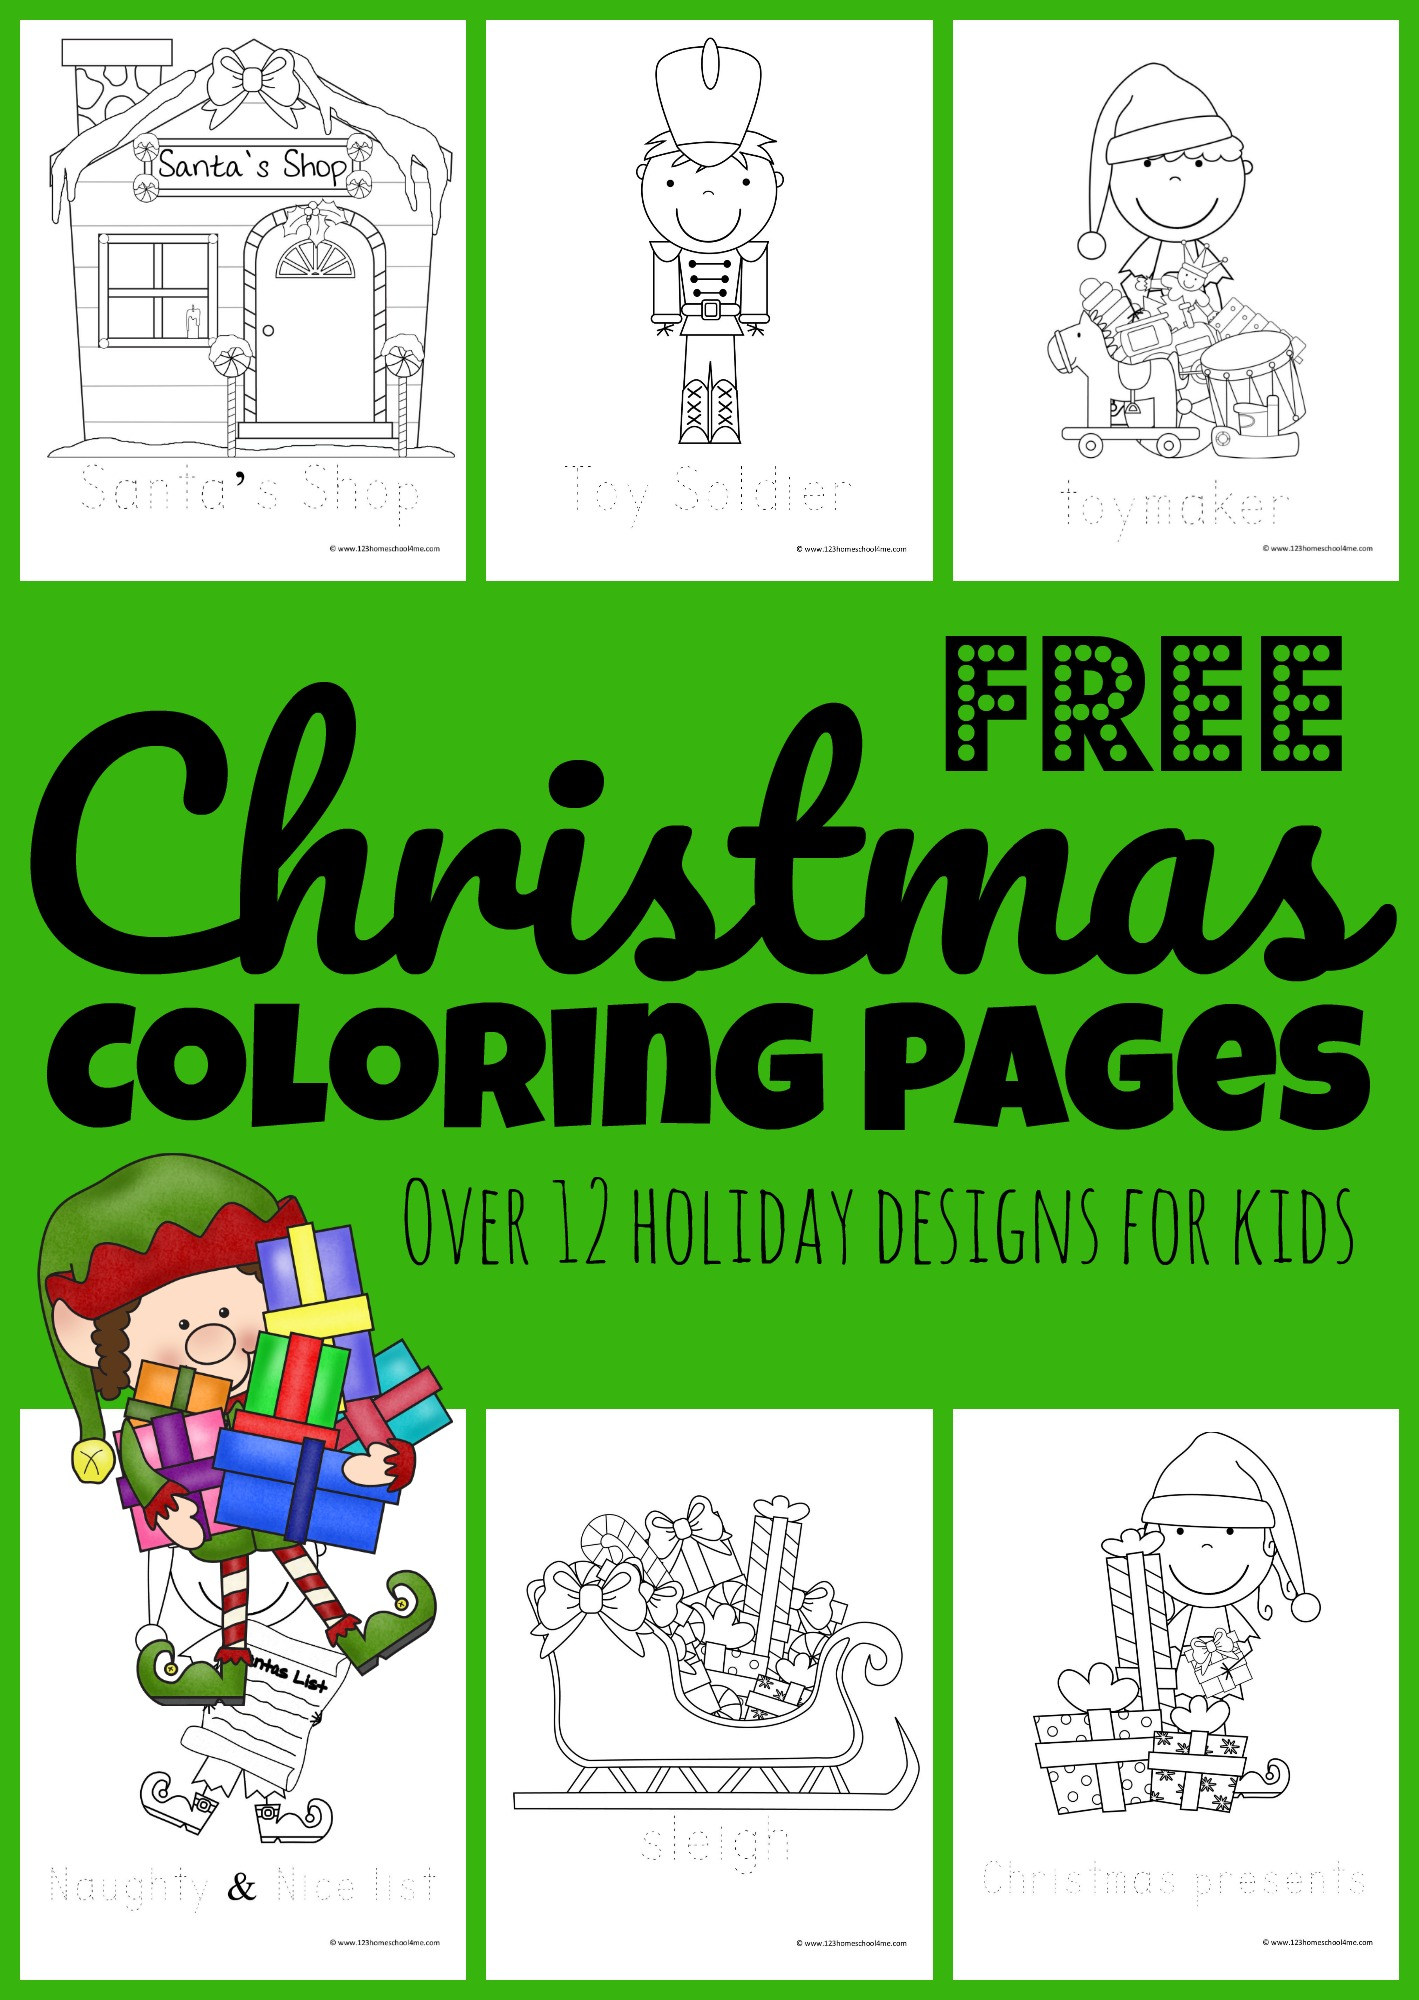 Celebrate the holiday seasons with these super cute, free printable Christmas Coloring Pages. This pack of free Christmas coloring sheets are all about Santa Clause and his helpers the Elves, Soldiers, toys, and Santa's workshop. Toddler, preschool, pre-k, kindergarten, and first grade children will have fun strengthening fine motor skills as they decorate and colour these simple coloring pages in December.  Simply download the Christmas Coloring Pages PDF and you are ready for fun!